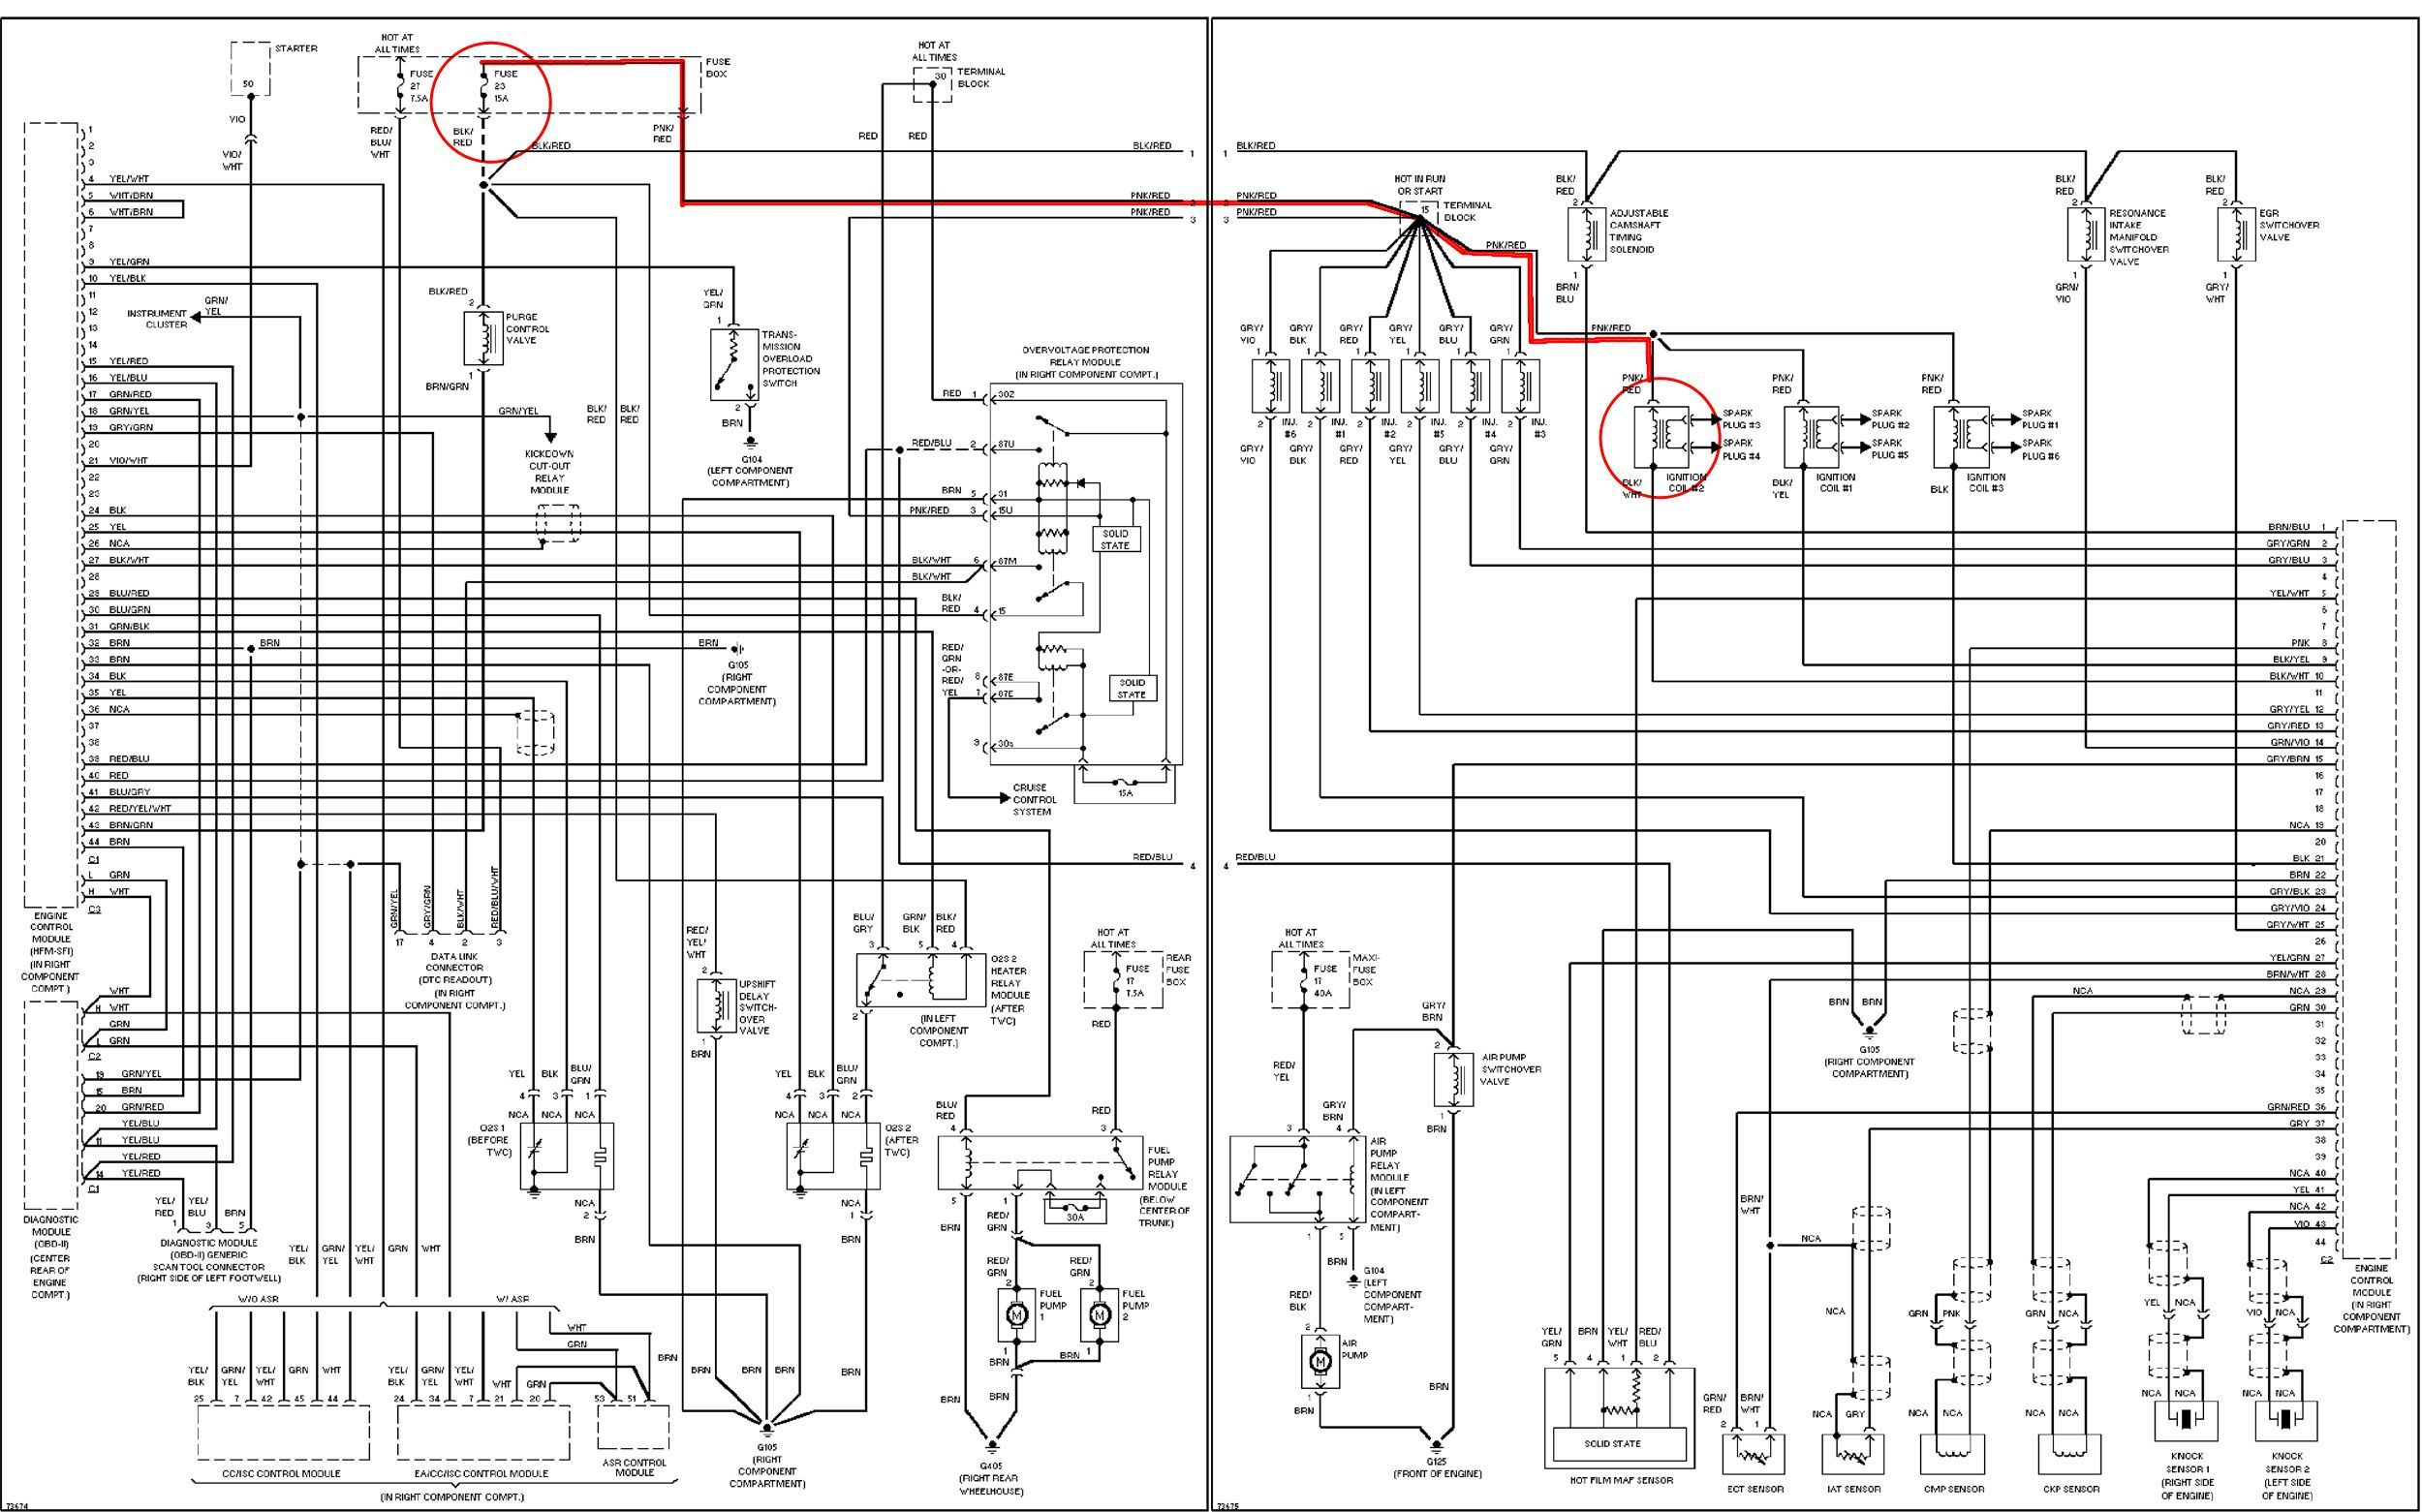 free mercedes benz wiring diagrams wiring library mercedes benz ml320 engine diagram mercedes benz w123 wiring diagram [ 2500 x 1561 Pixel ]